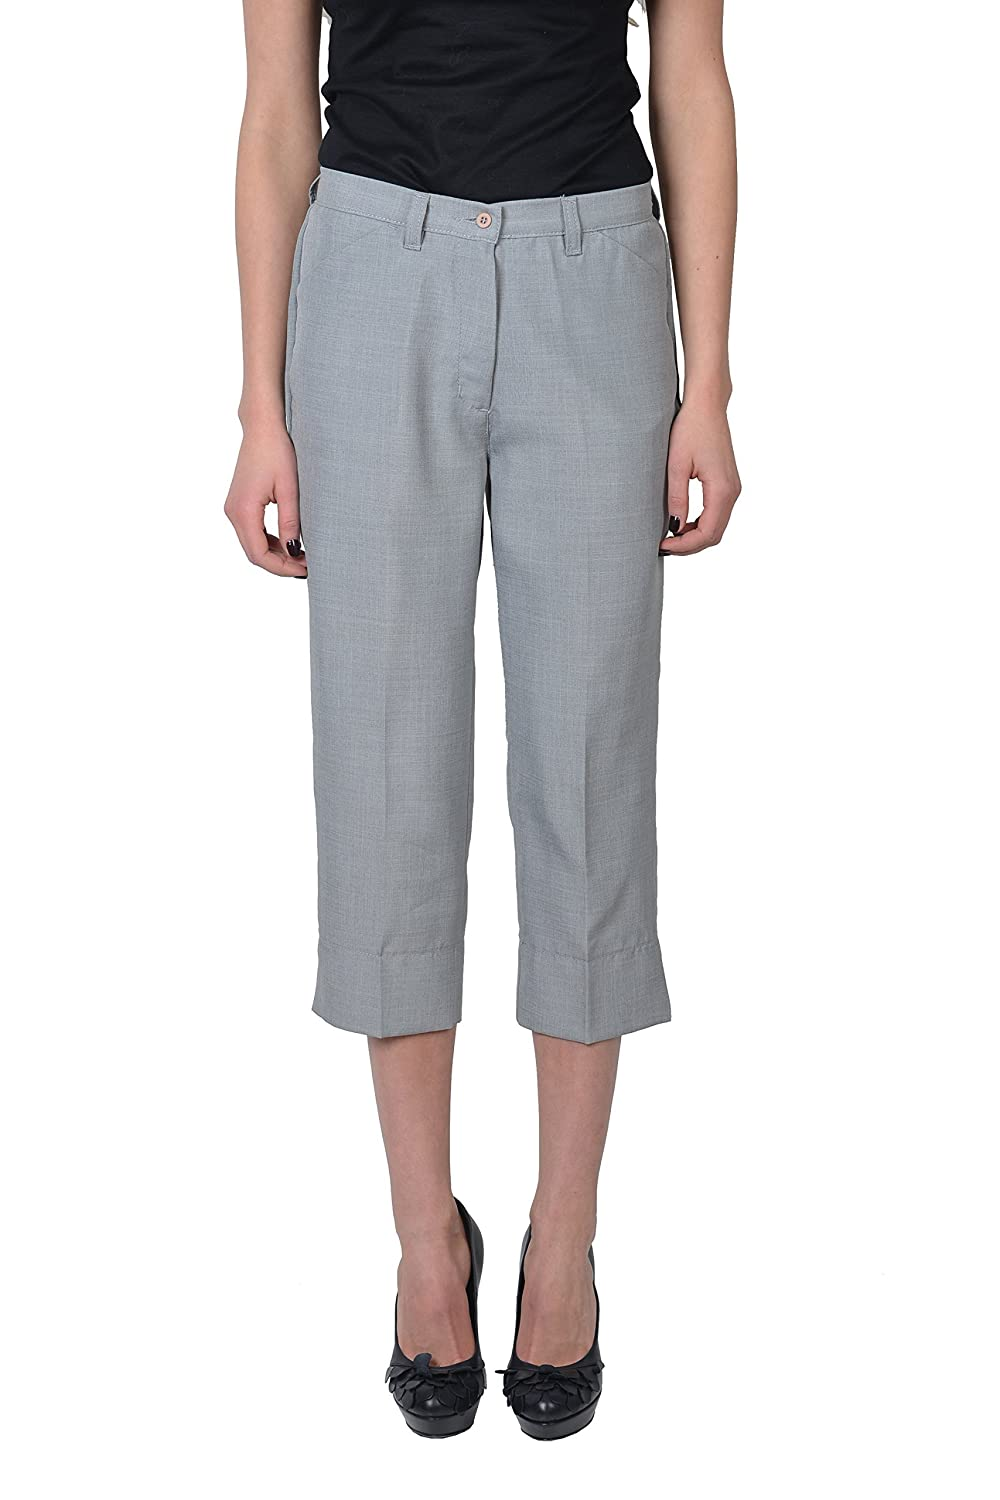 Take Two Women's Gray Cropped Pants Capri US 28 IT 42